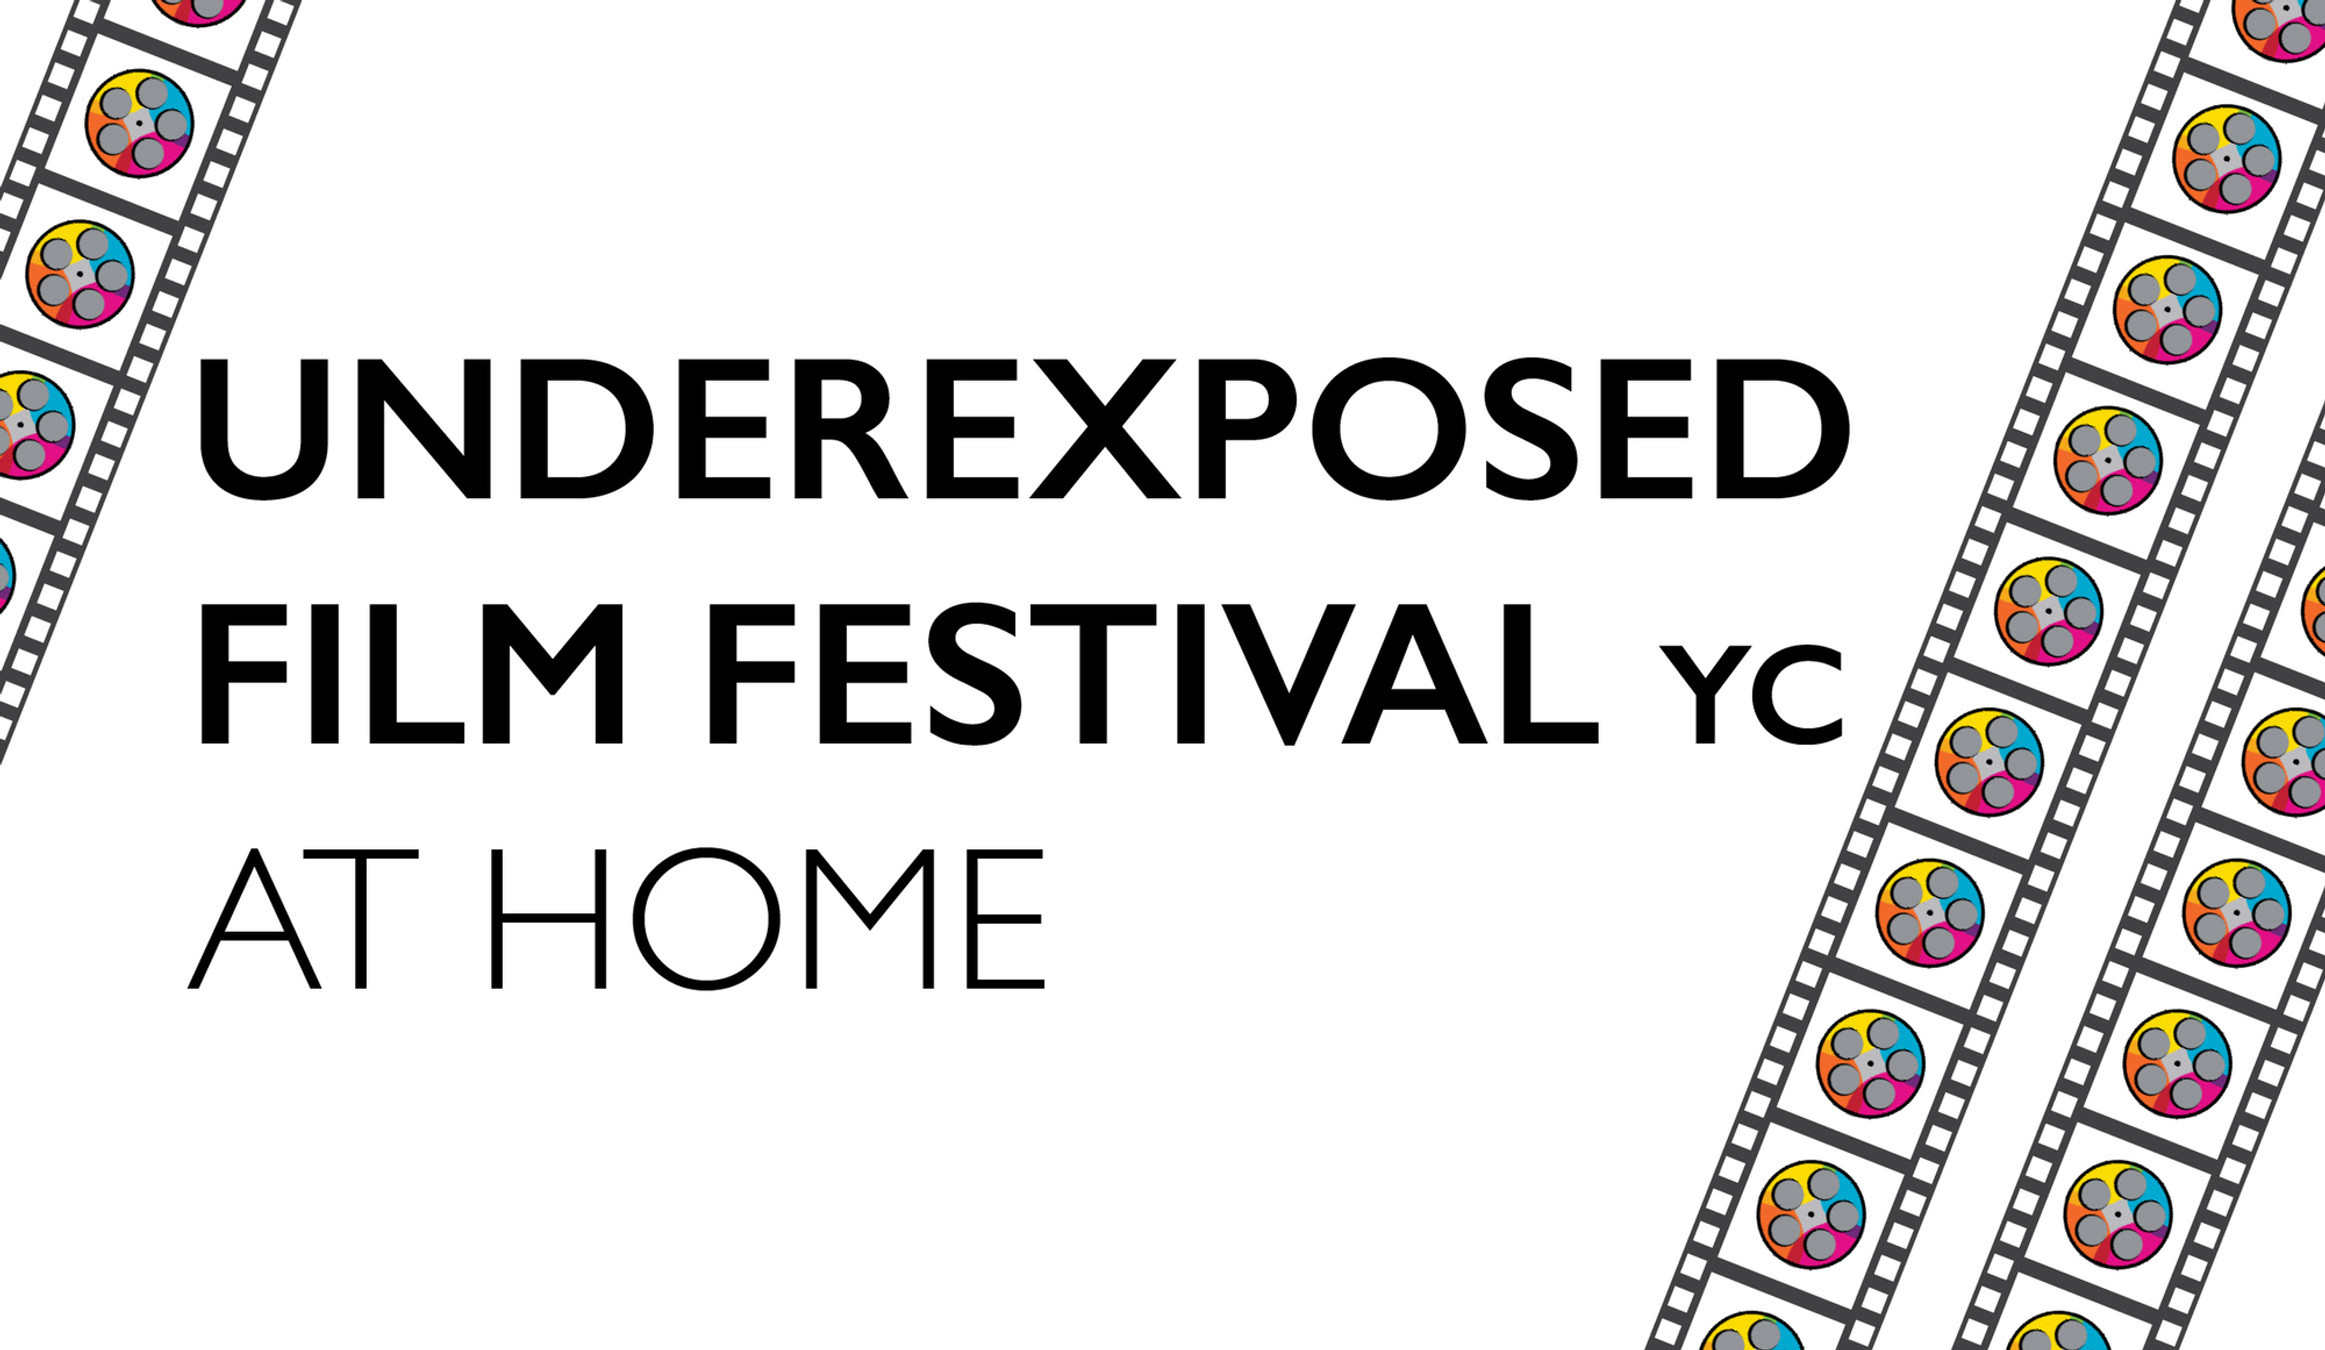 Underexposed Film Festival yc at Home